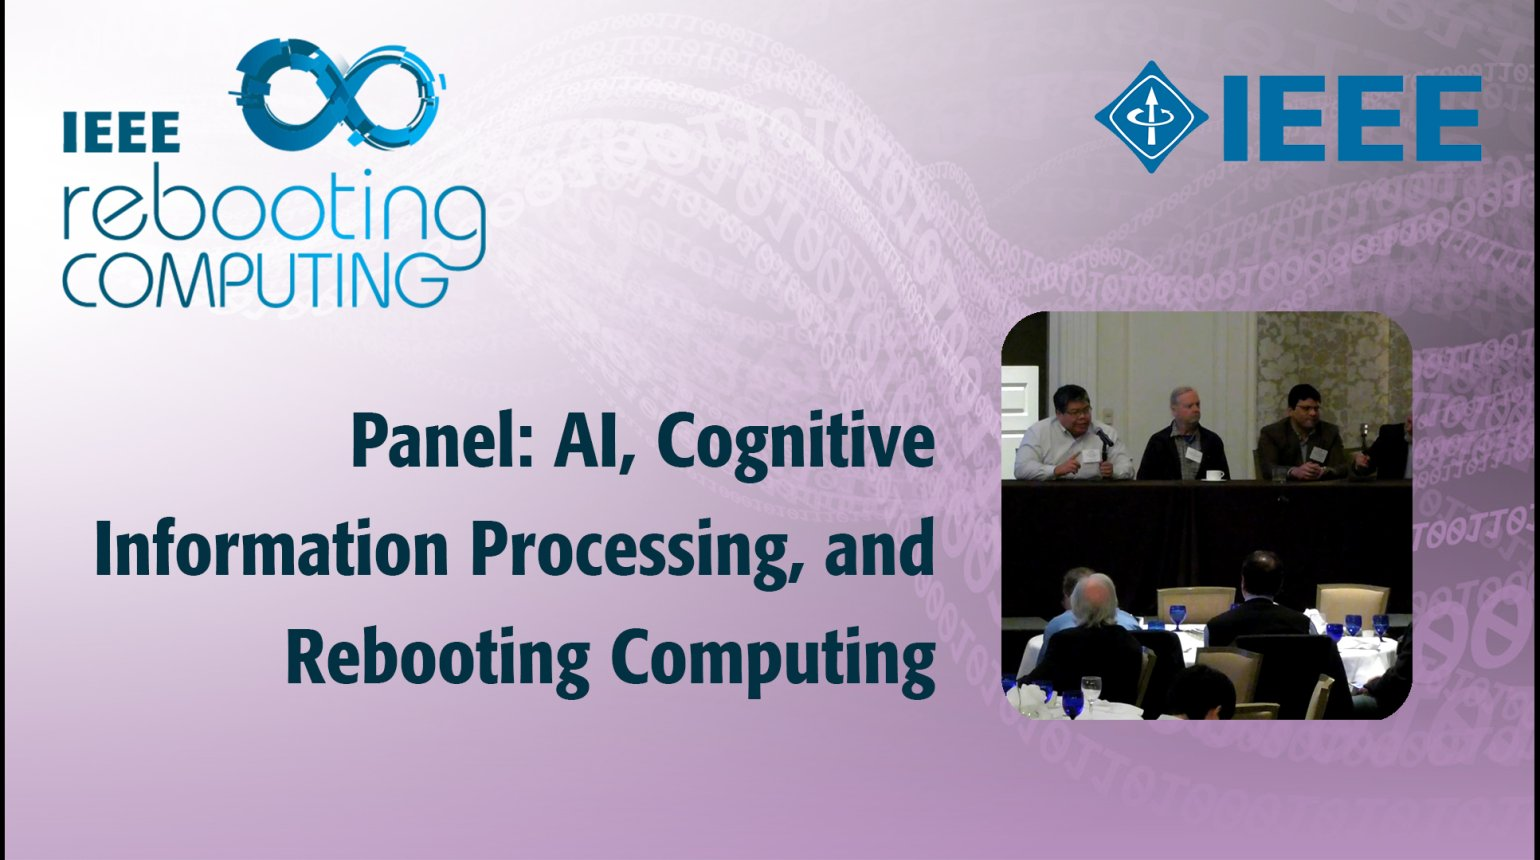 Special Evening Panel Discussion: AI, Cognitive Information Processing, and Rebooting Computing - IEEE Rebooting Computing 2017